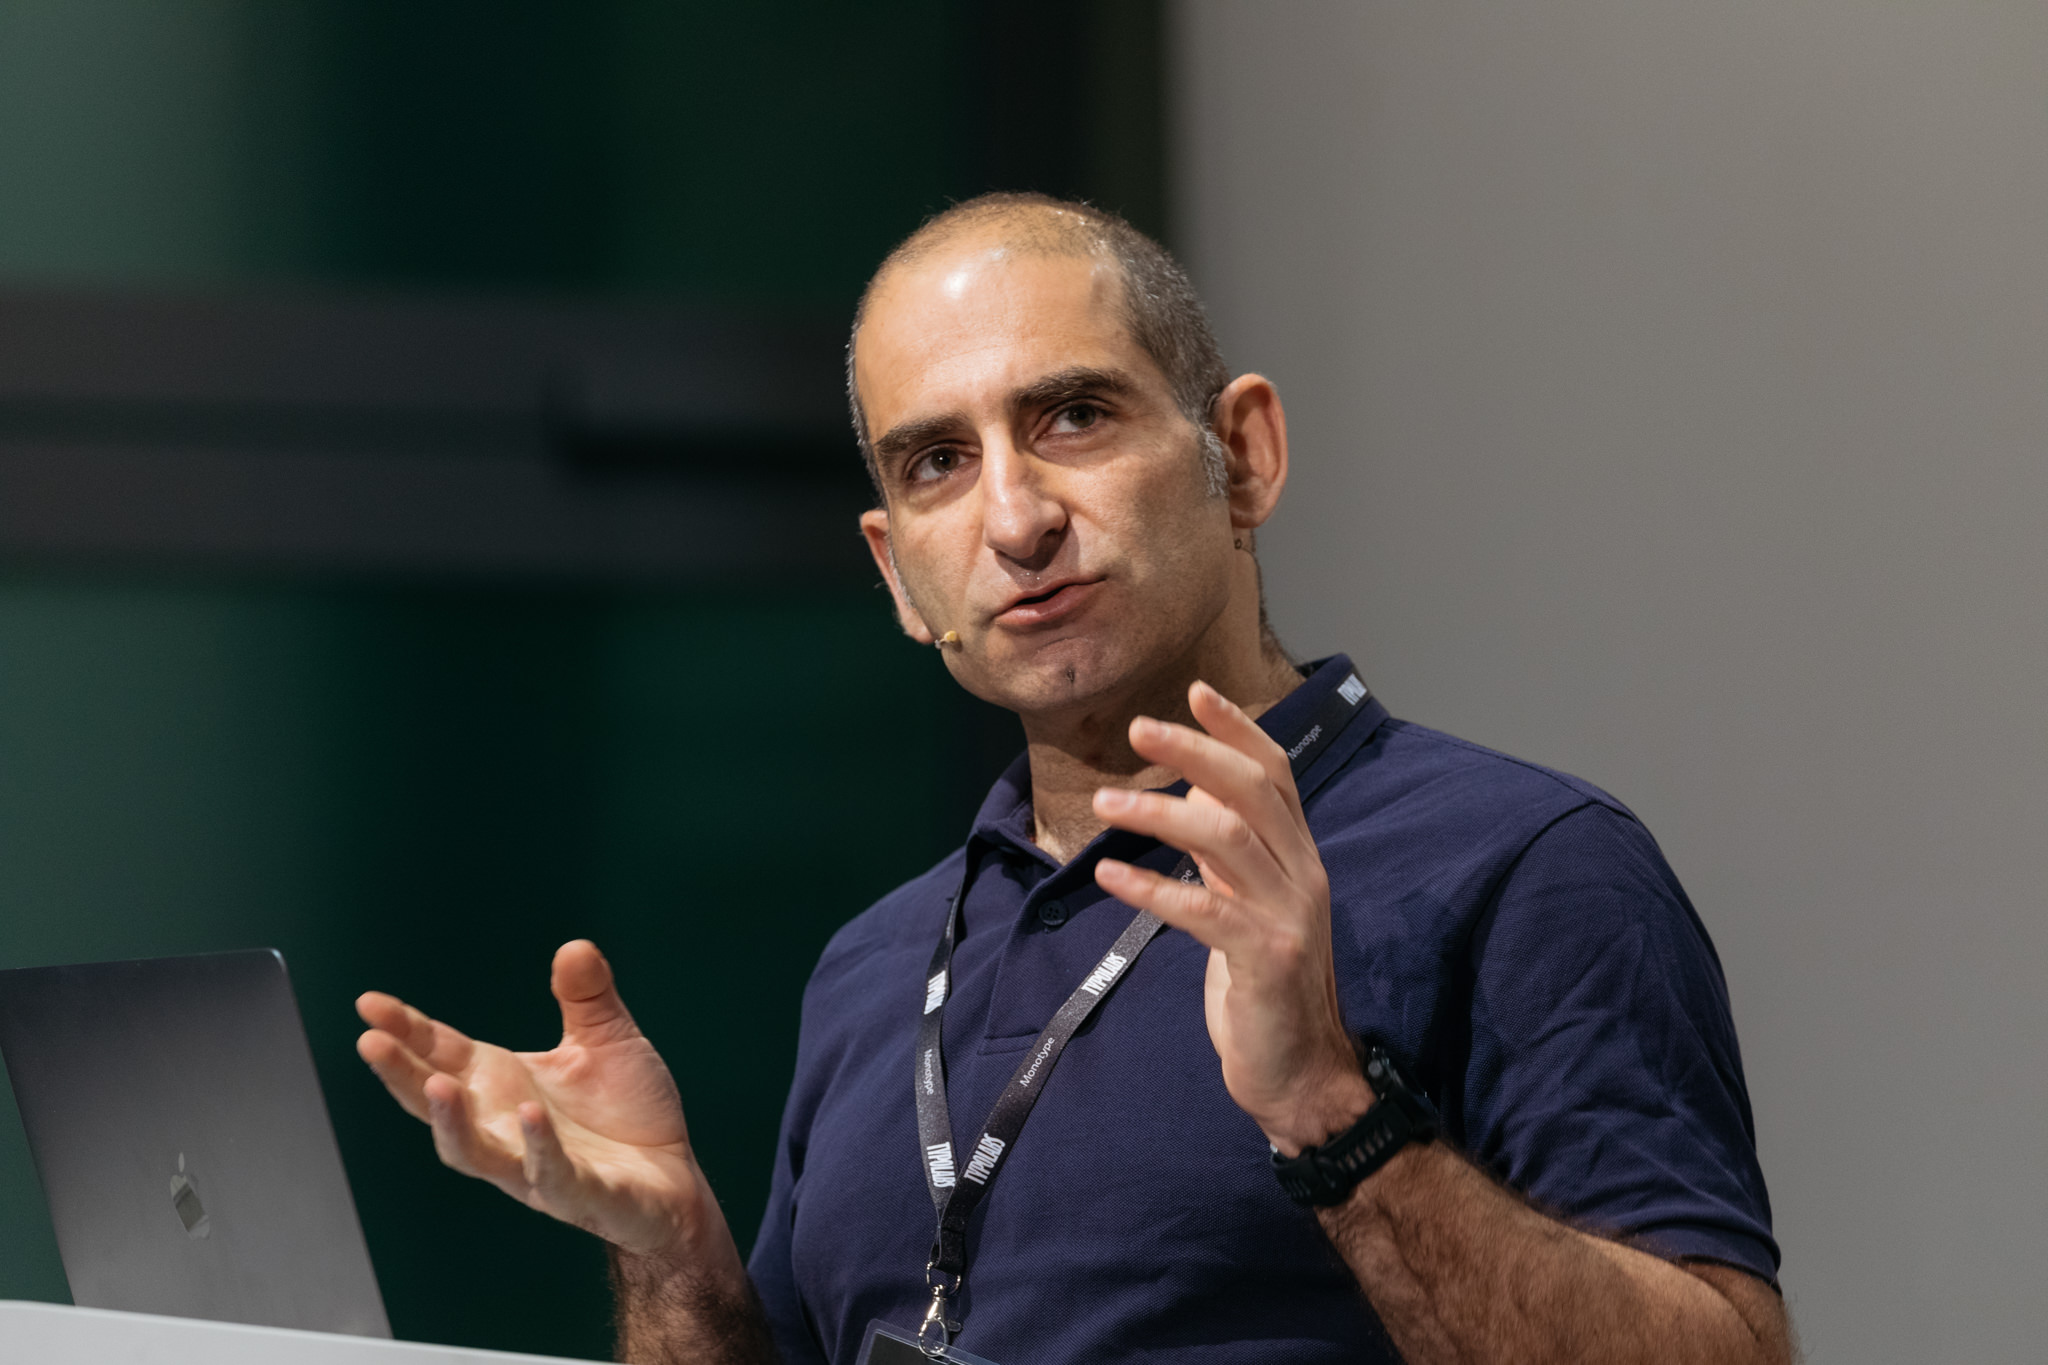 Gerry Leonidas at TYPO Labs 2018